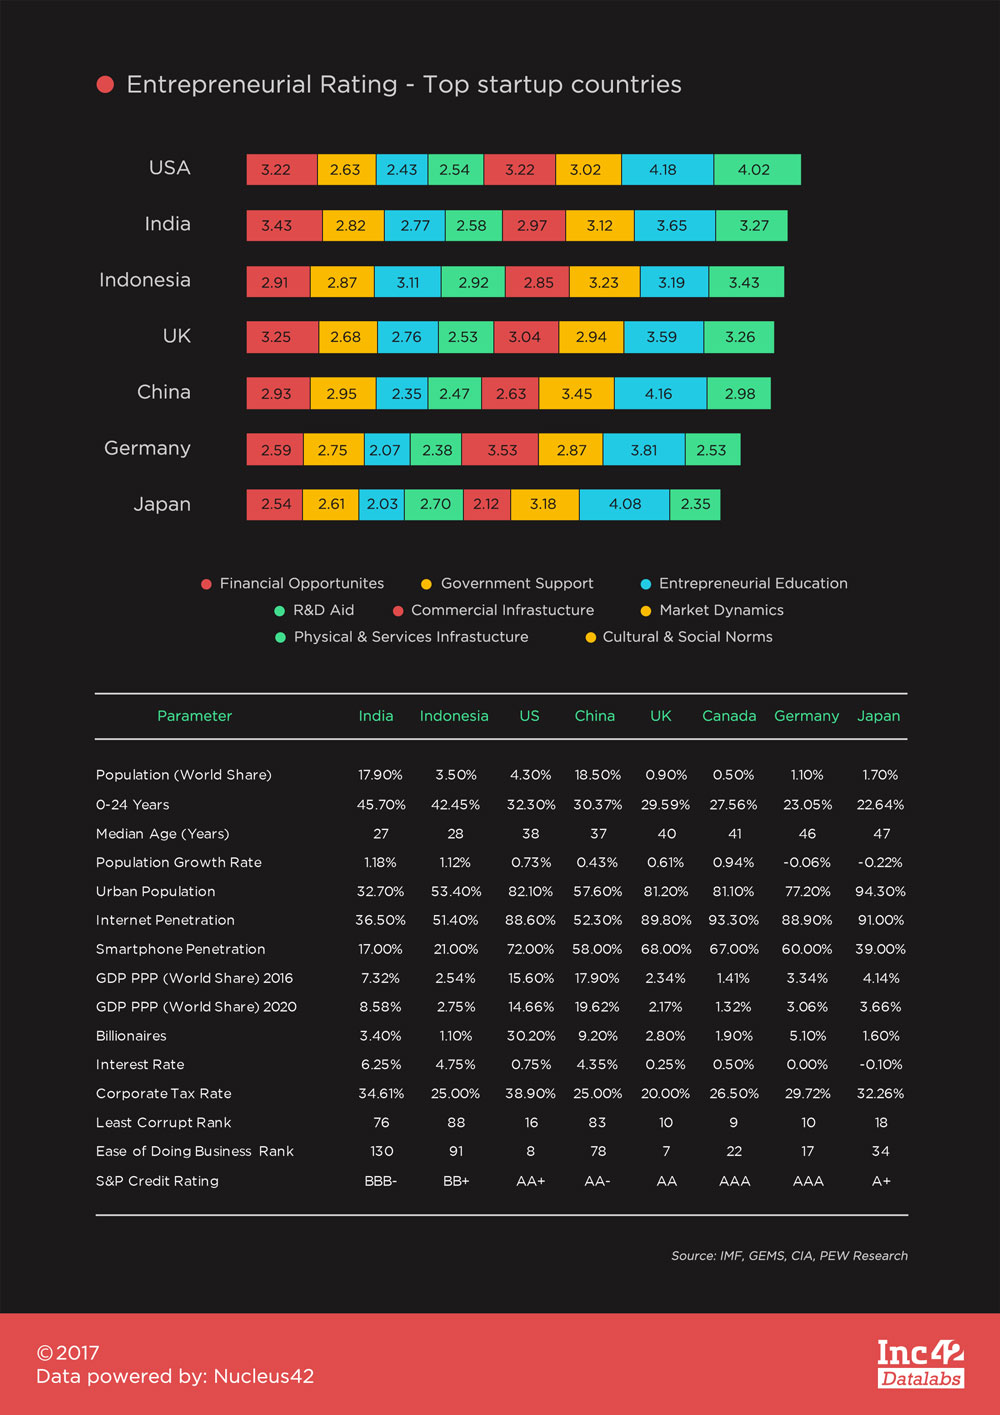 Entrepreneurial-Rating-Top-startup-countries-